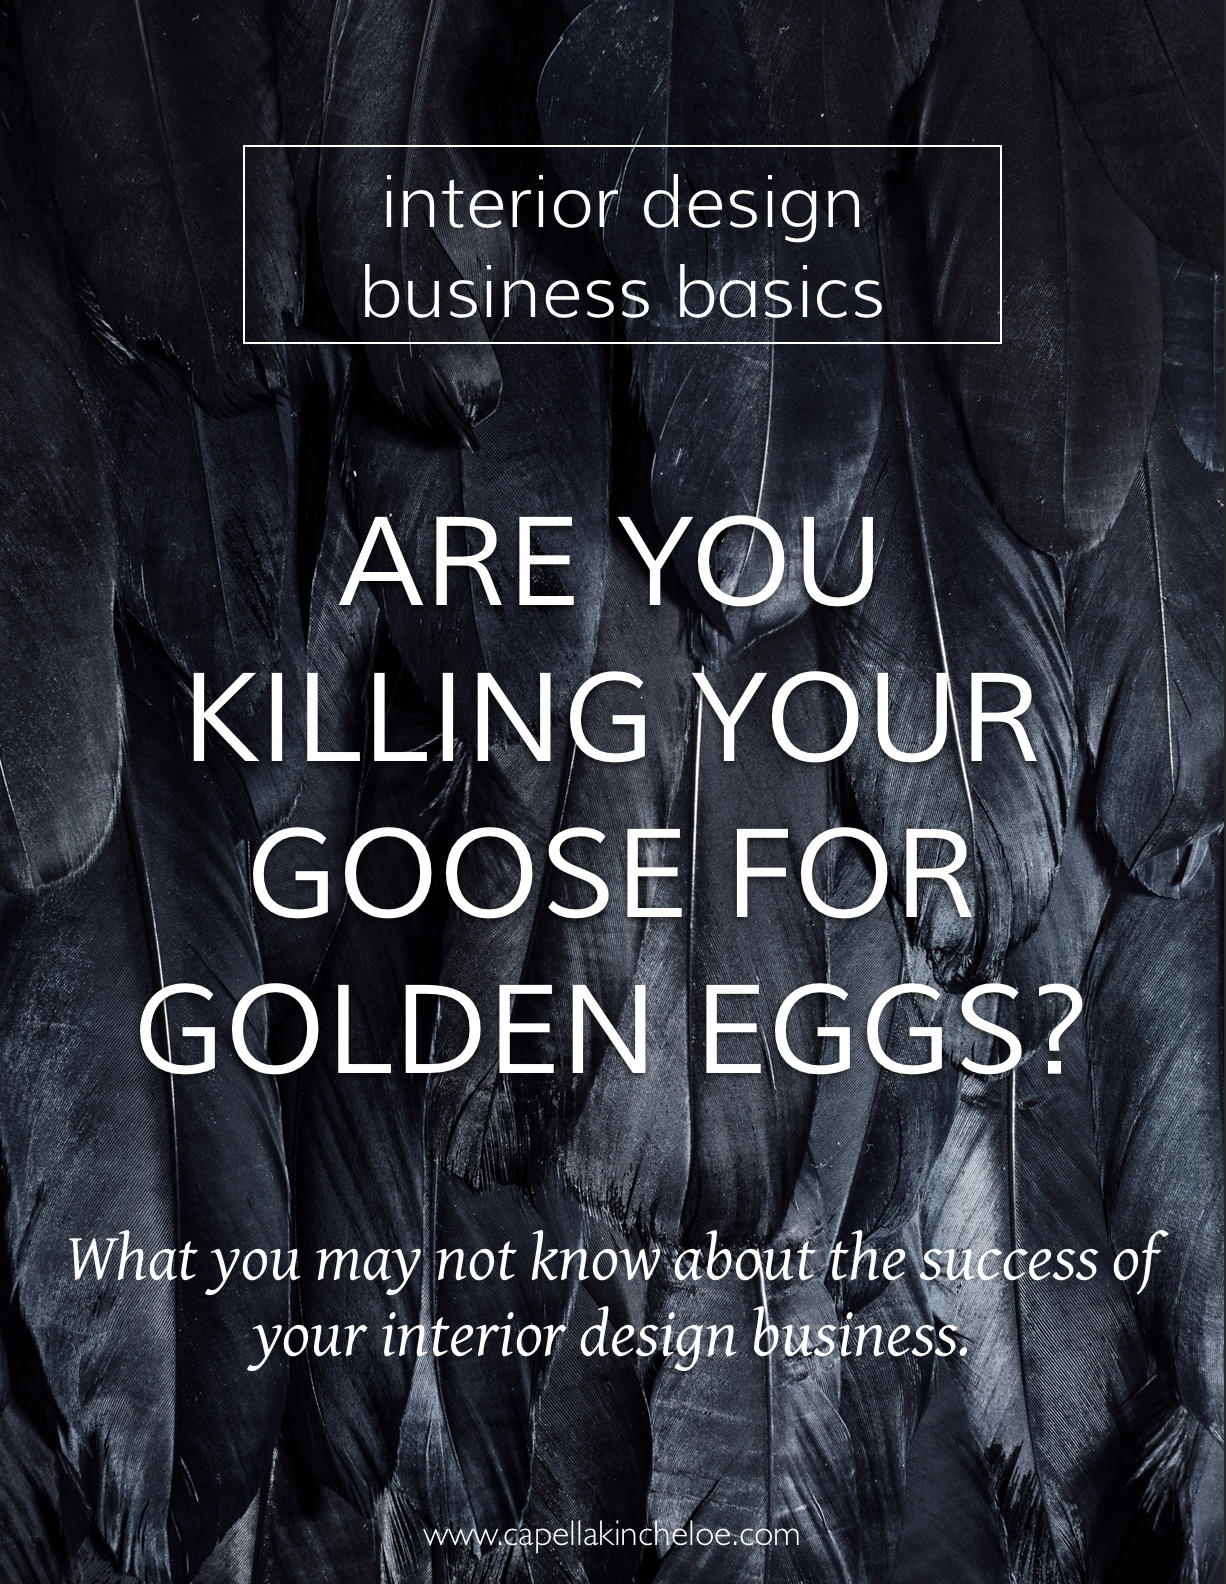 Are you effectively supporting your golden eggs with a solid business foundation, or is your interior design business out of wack? #interiordesignbusiness #cktradesecrets #interiordesignceo #productivity